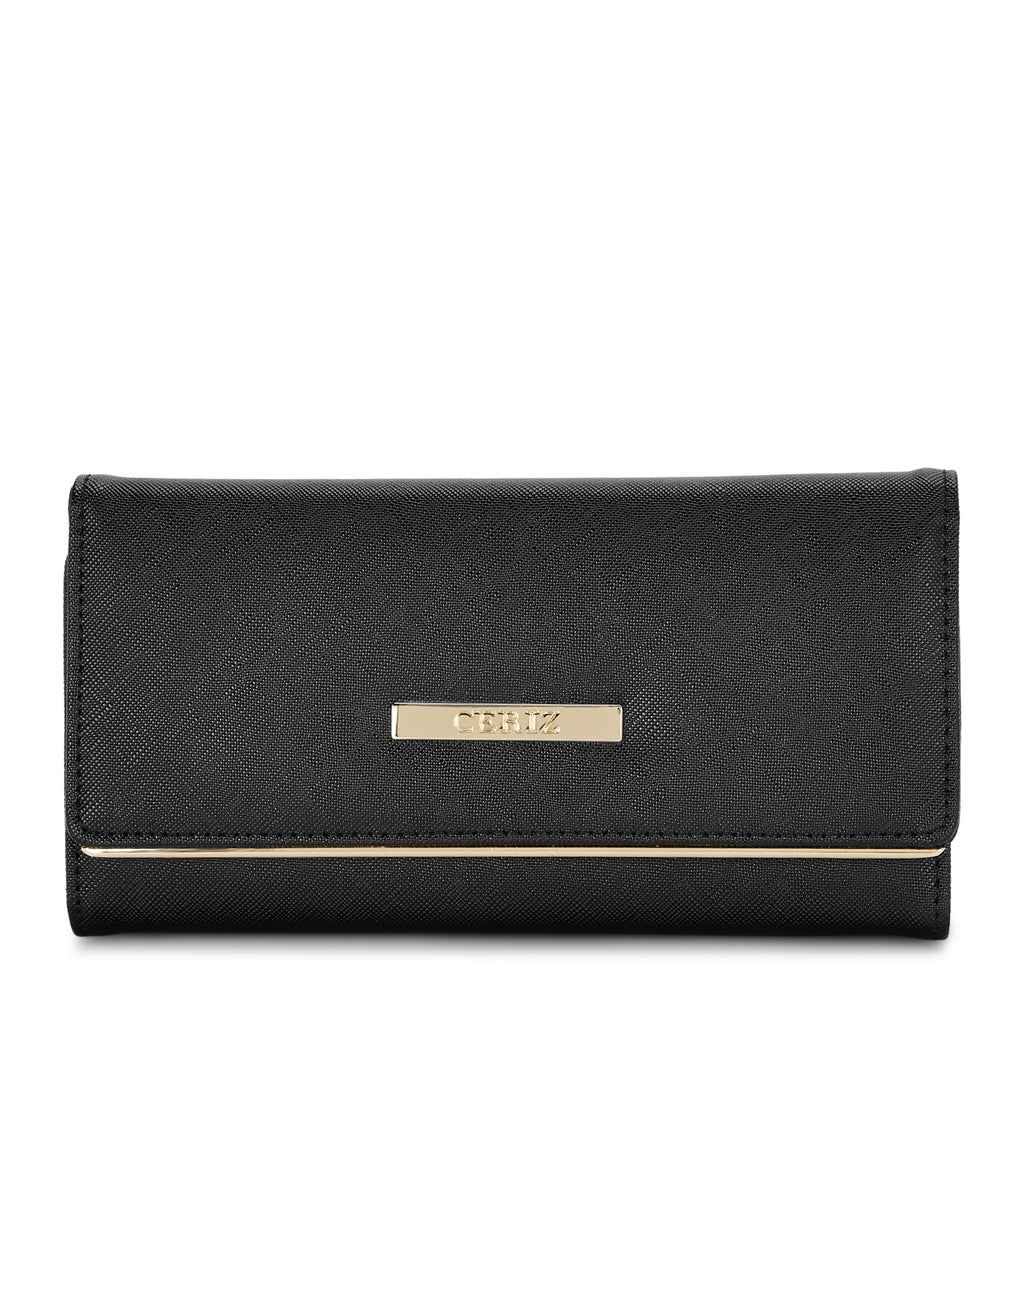 Tiffanie Black Wallet